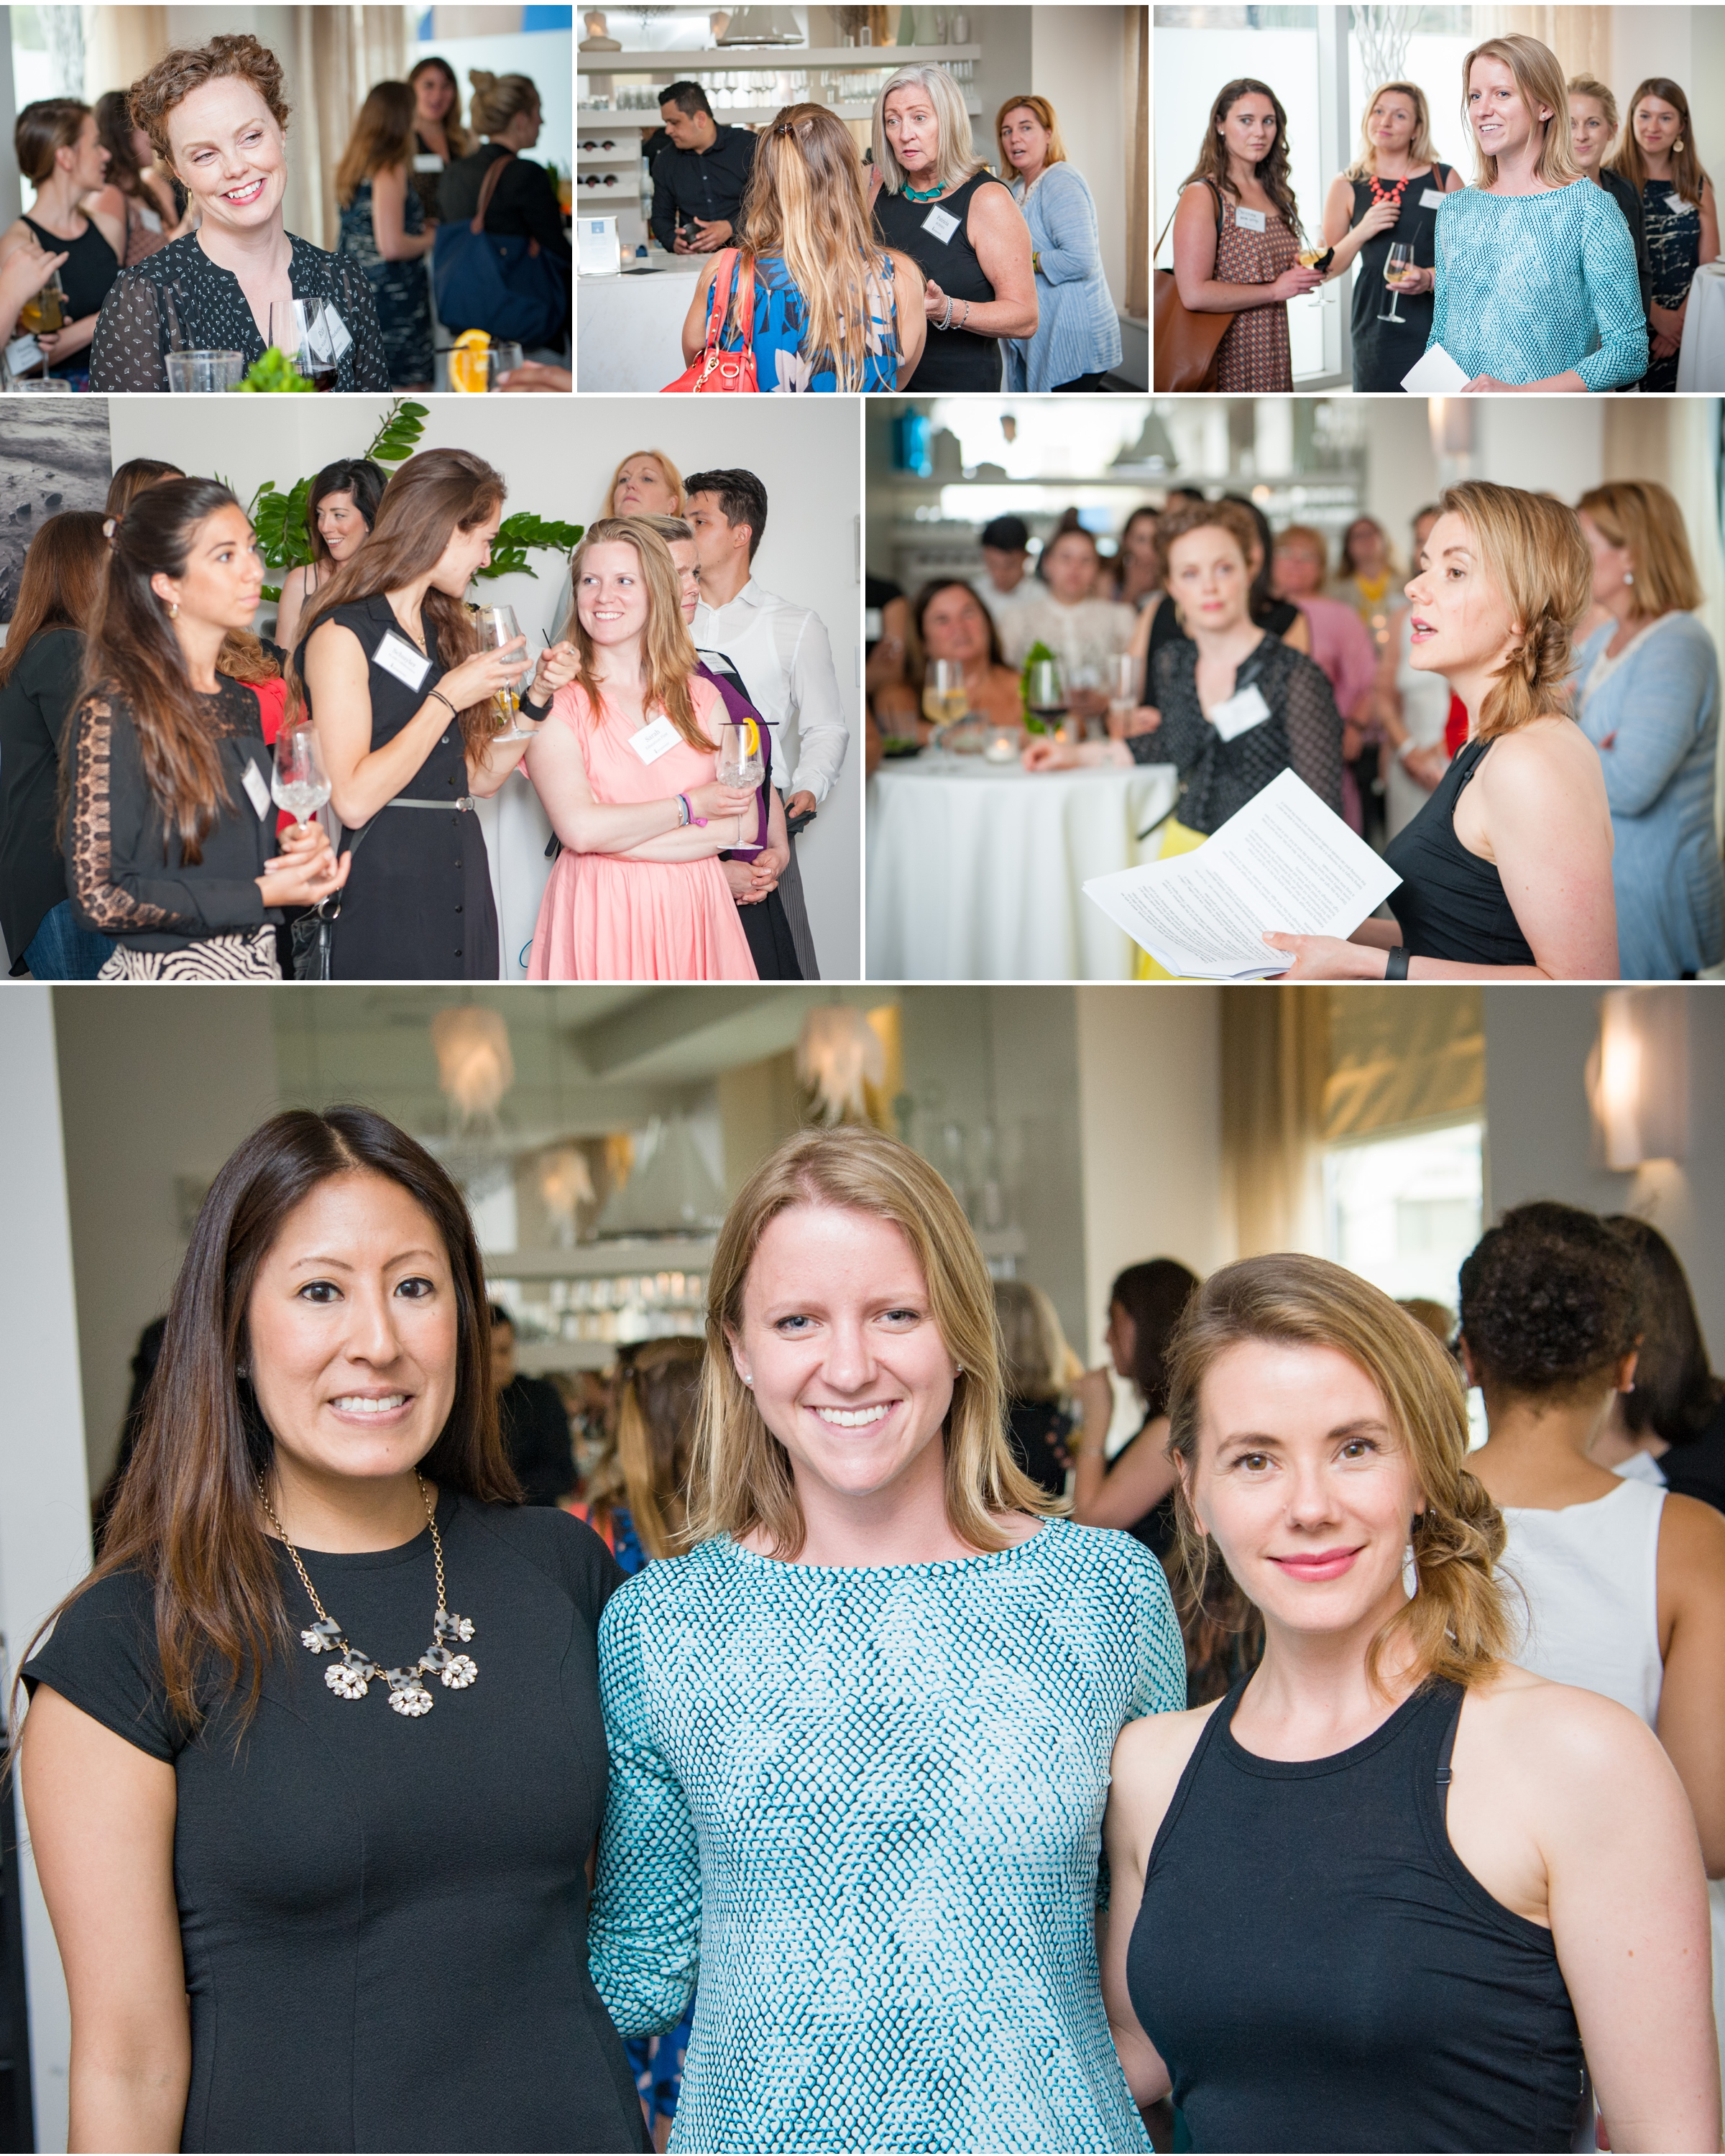 Popavents  Summer Party at super cool venue Ostra.  Lisa Flores-  Ostra,  Caitlin Carey-Popavents, Jennifer Hanway-Holistic Nutritionist